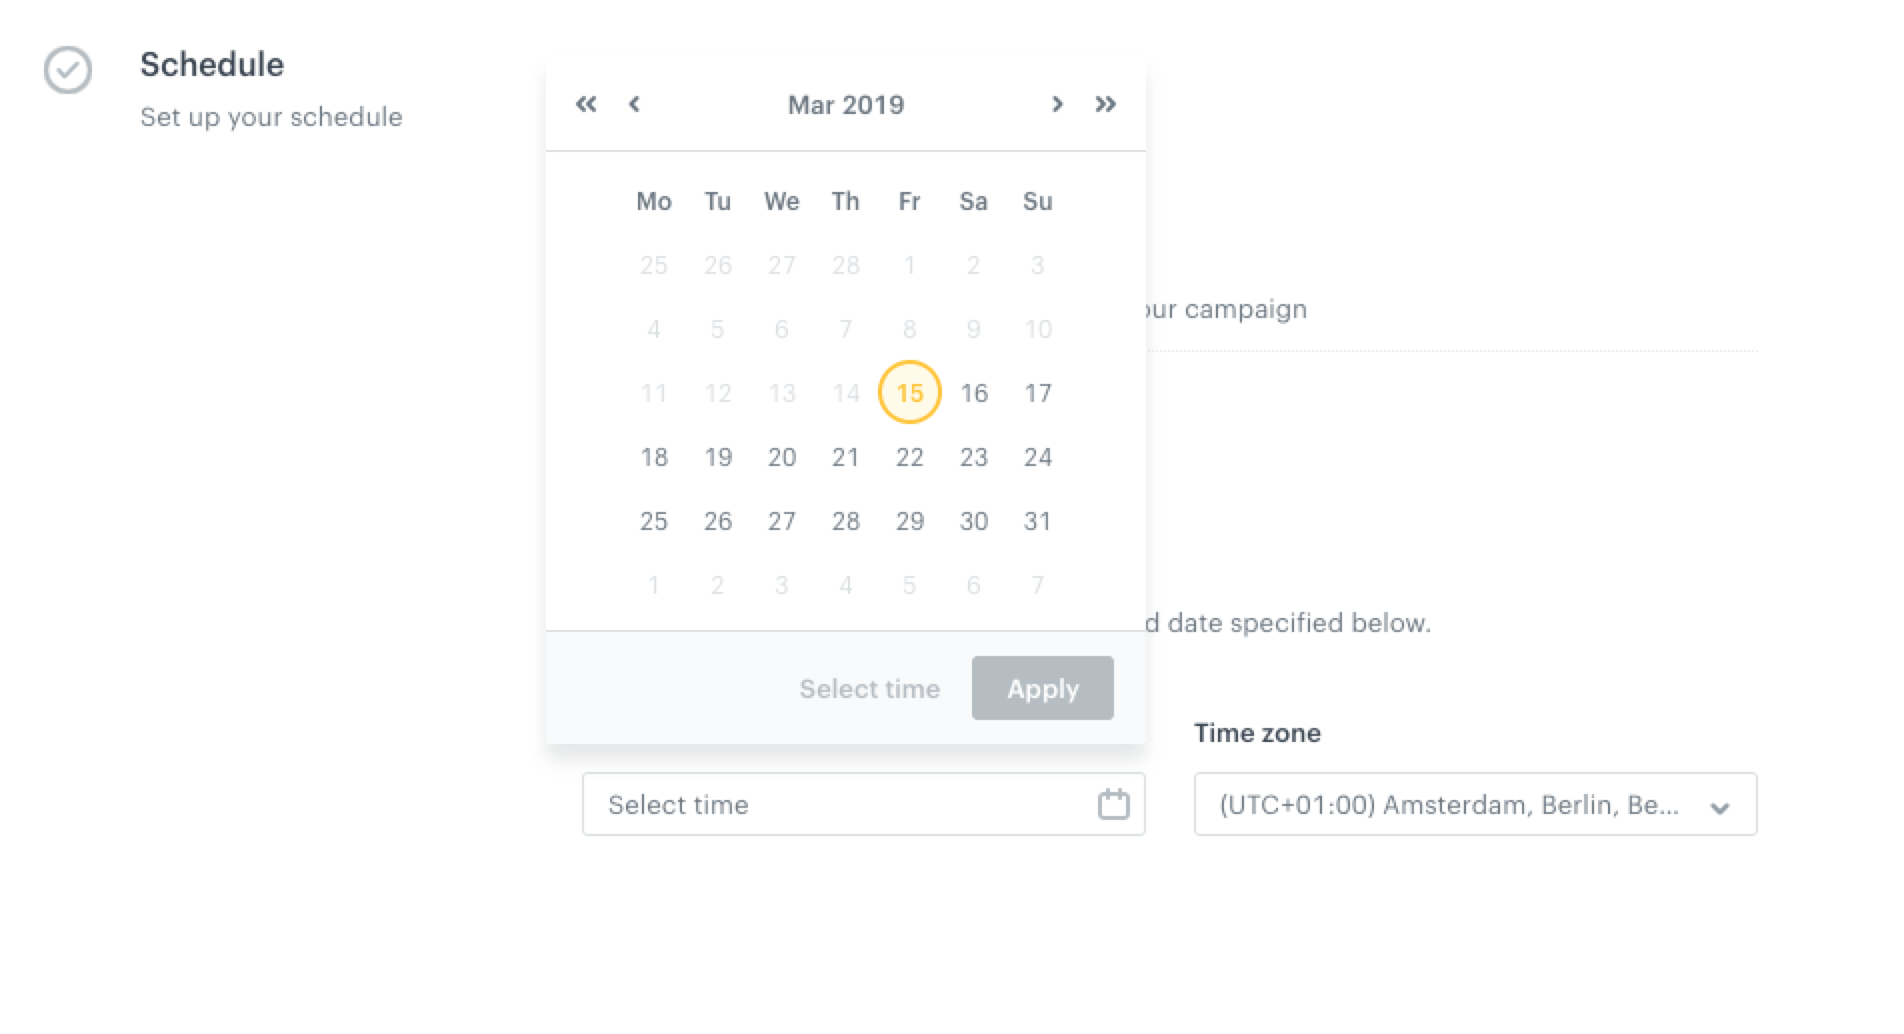 Image presents a calendar in a scheduler with one date picked